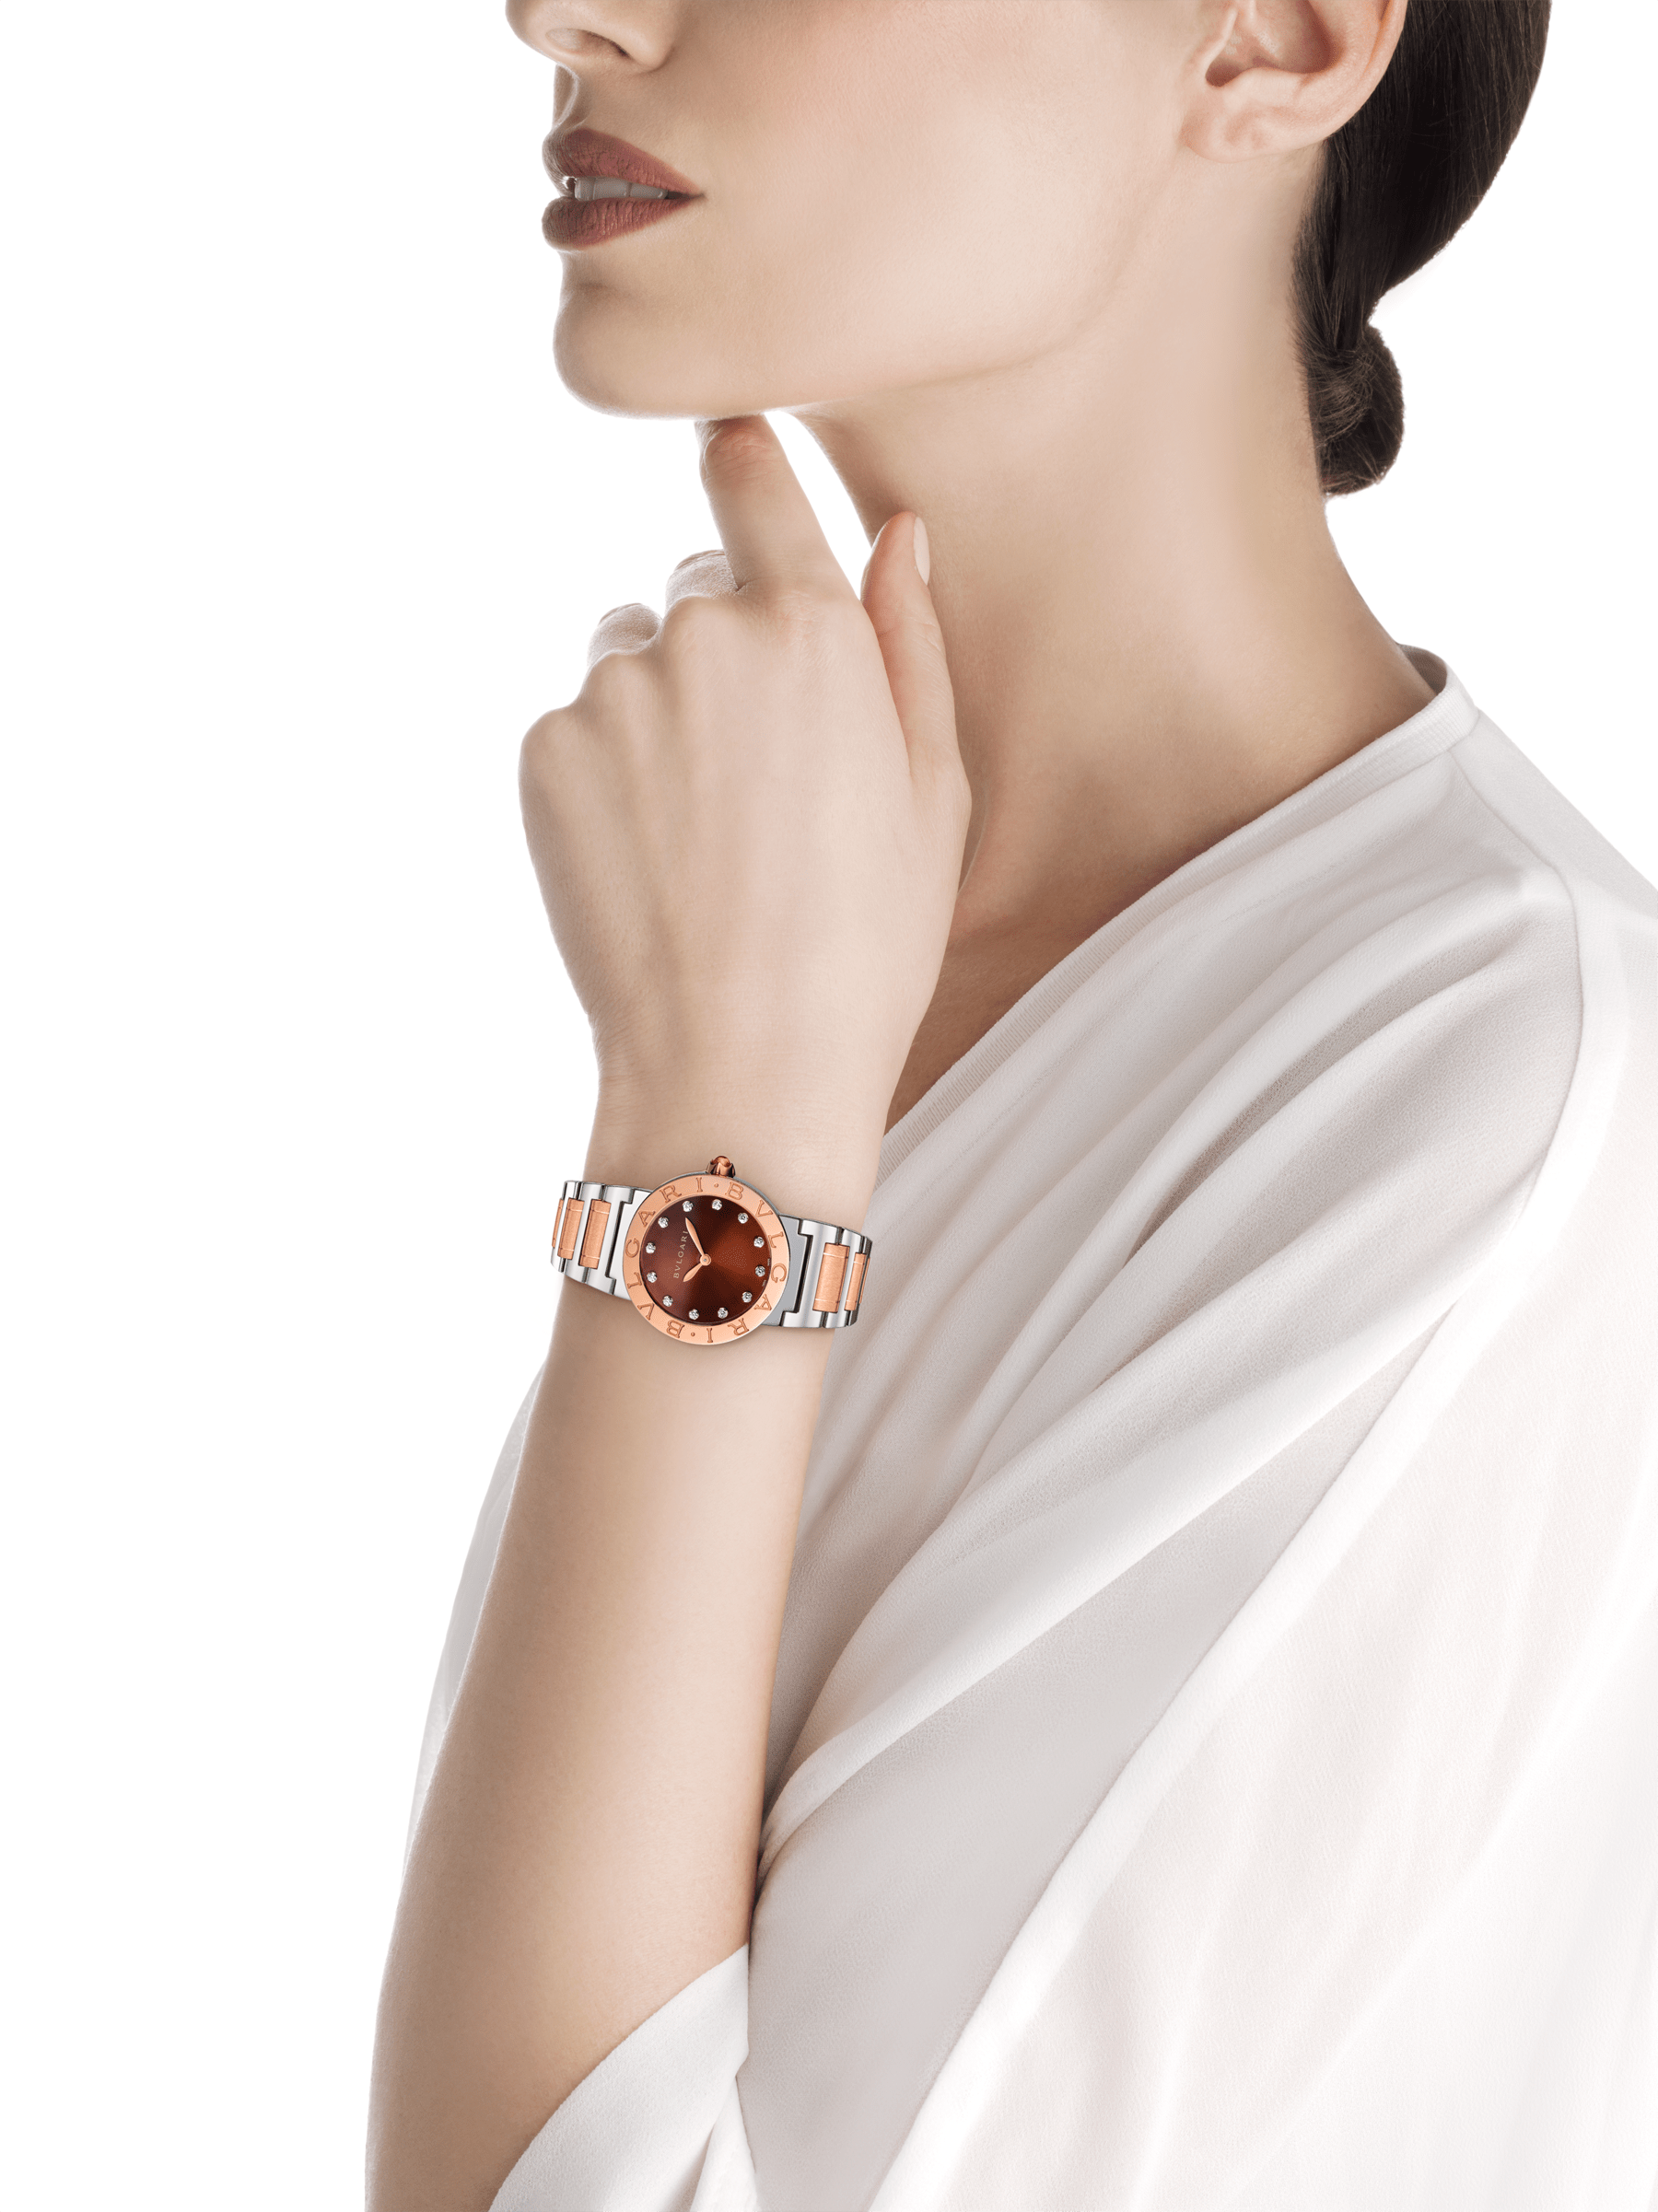 BVLGARI BVLGARI watch in stainless steel and 18 kt rose gold case and bracelet, with brown soleil lacquered dial and diamond indexes. Small model 102155 image 4